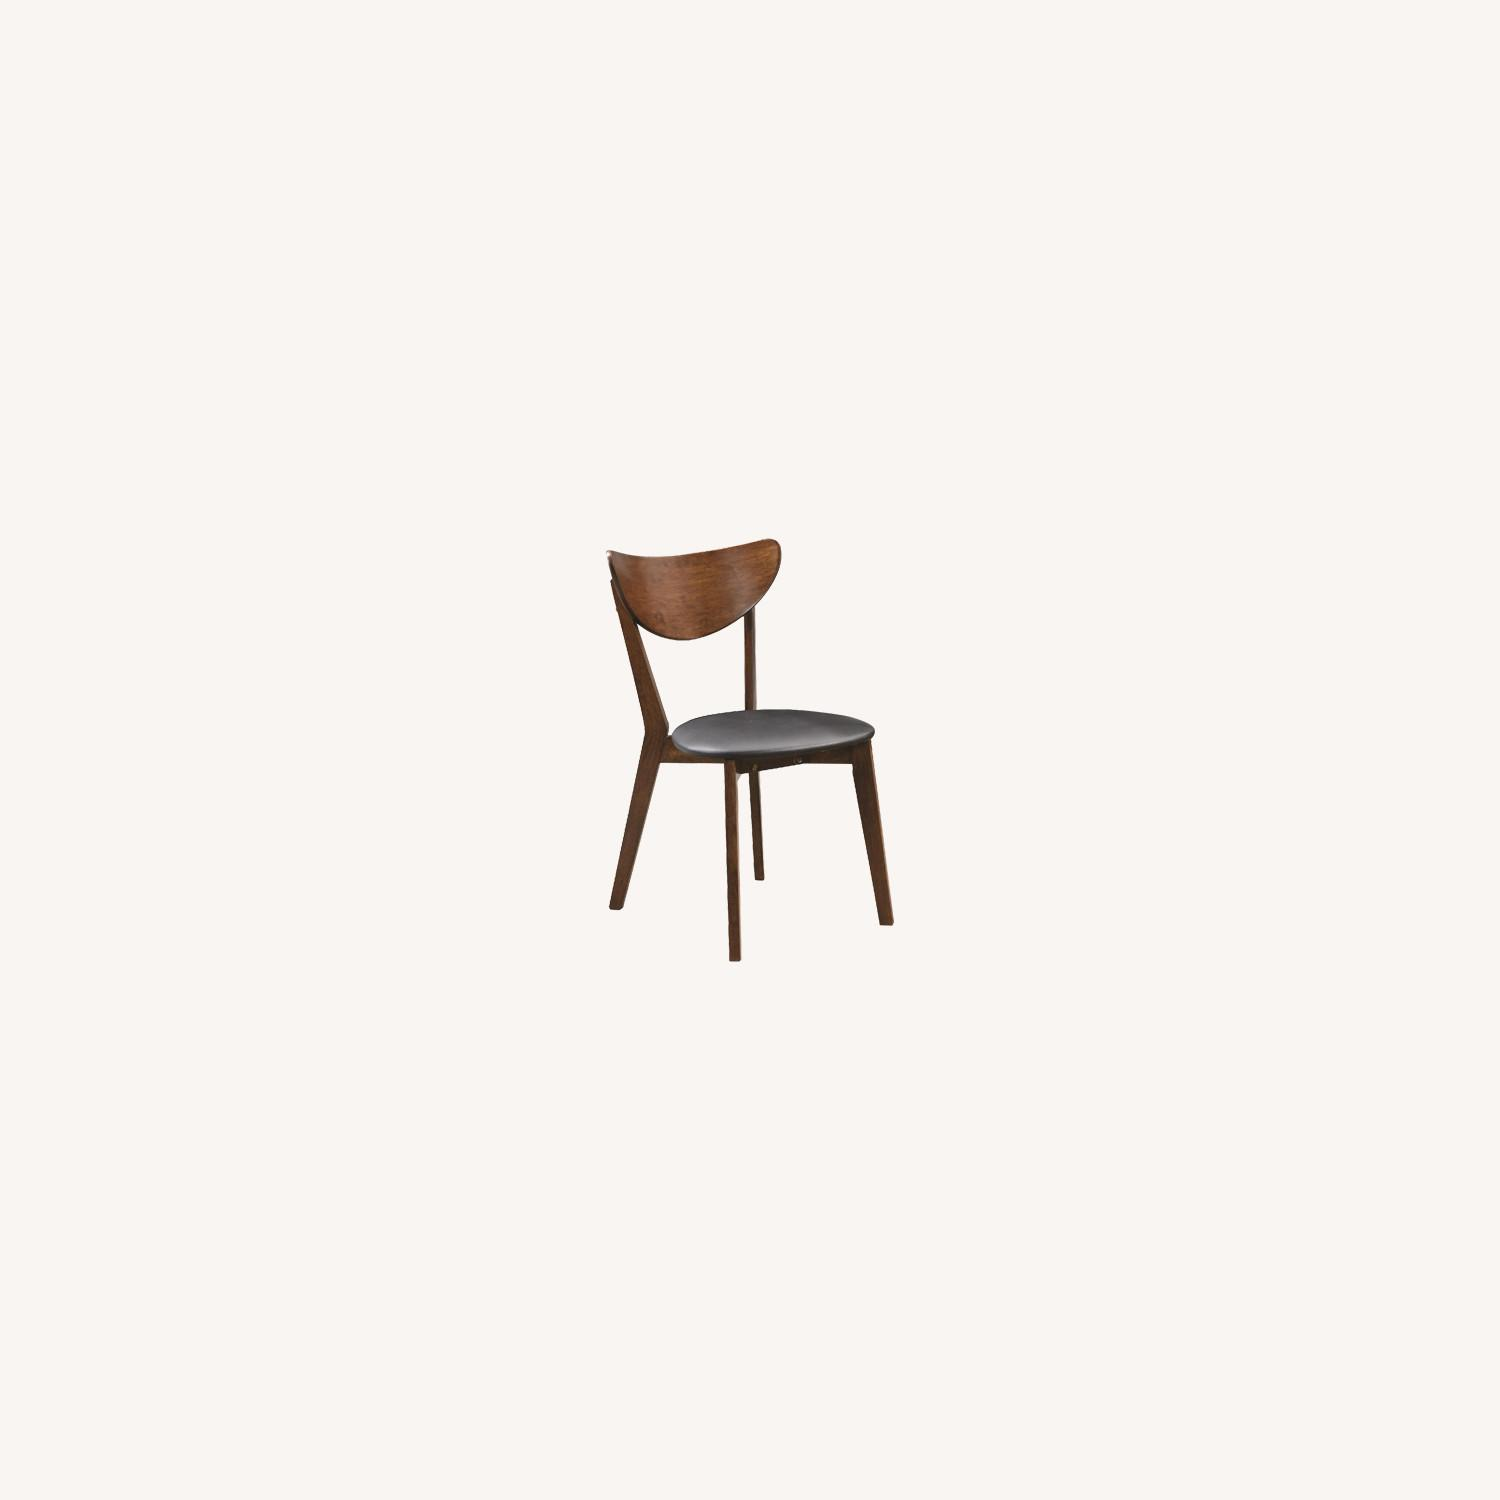 Mid-Century Retro  Dining Chairs in Walnut Finish - image-0